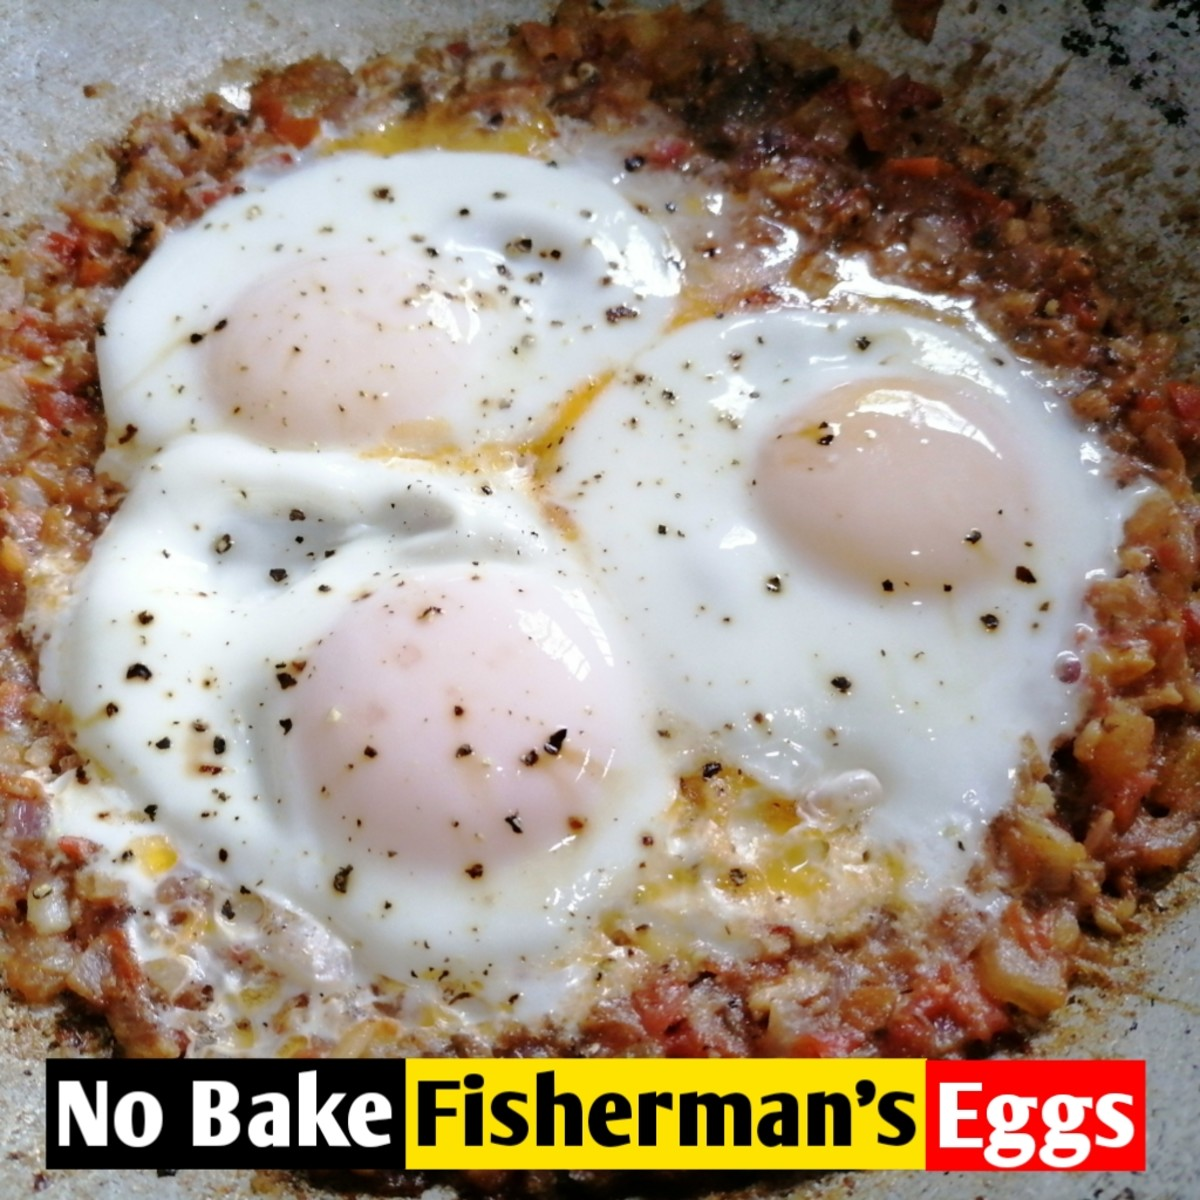 No-bake fisherman's eggs